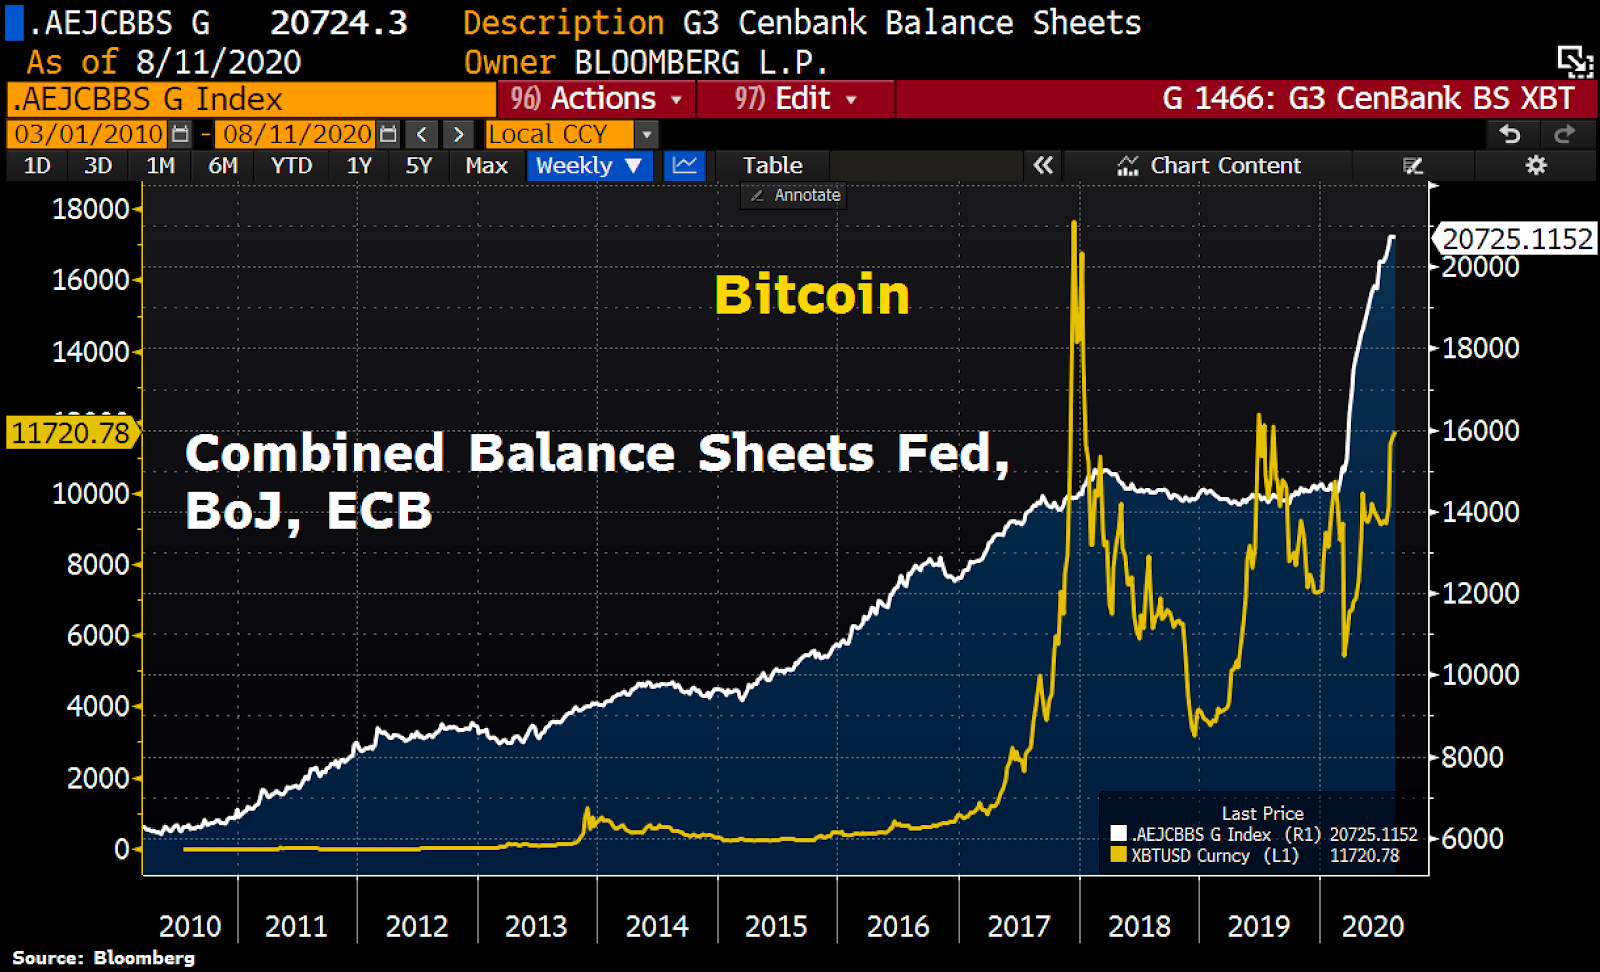 Central banks' balance sheet versus BTC/USD